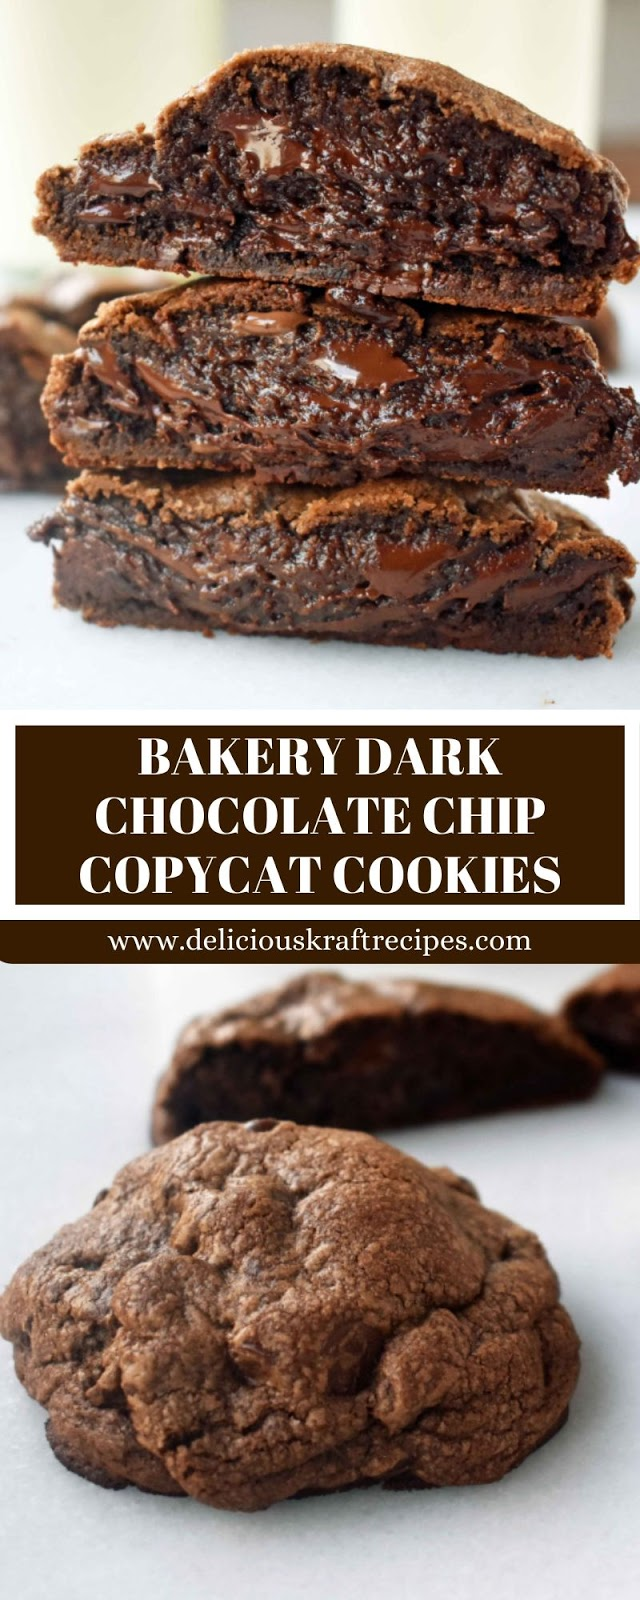 BAKERY DARK CHOCOLATE CHIP COPYCAT COOKIES